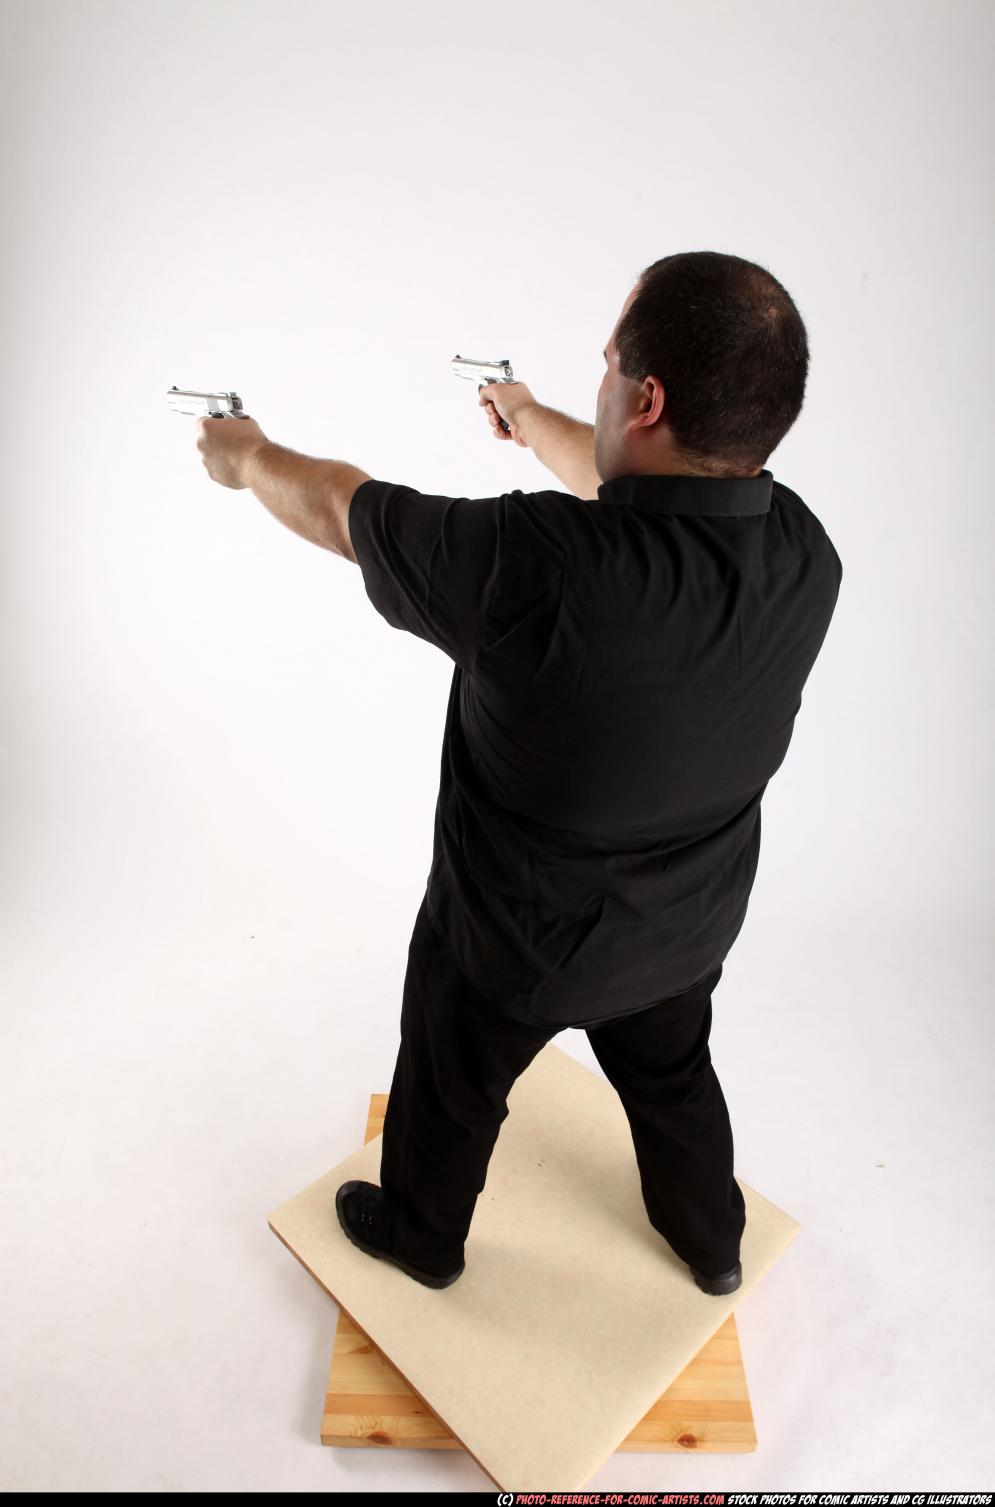 Image from Comic Artist - Furious Mobster Shooting Dual Guns - 226482012_06_mobster_dual_guns_pose4_05_a.jpg